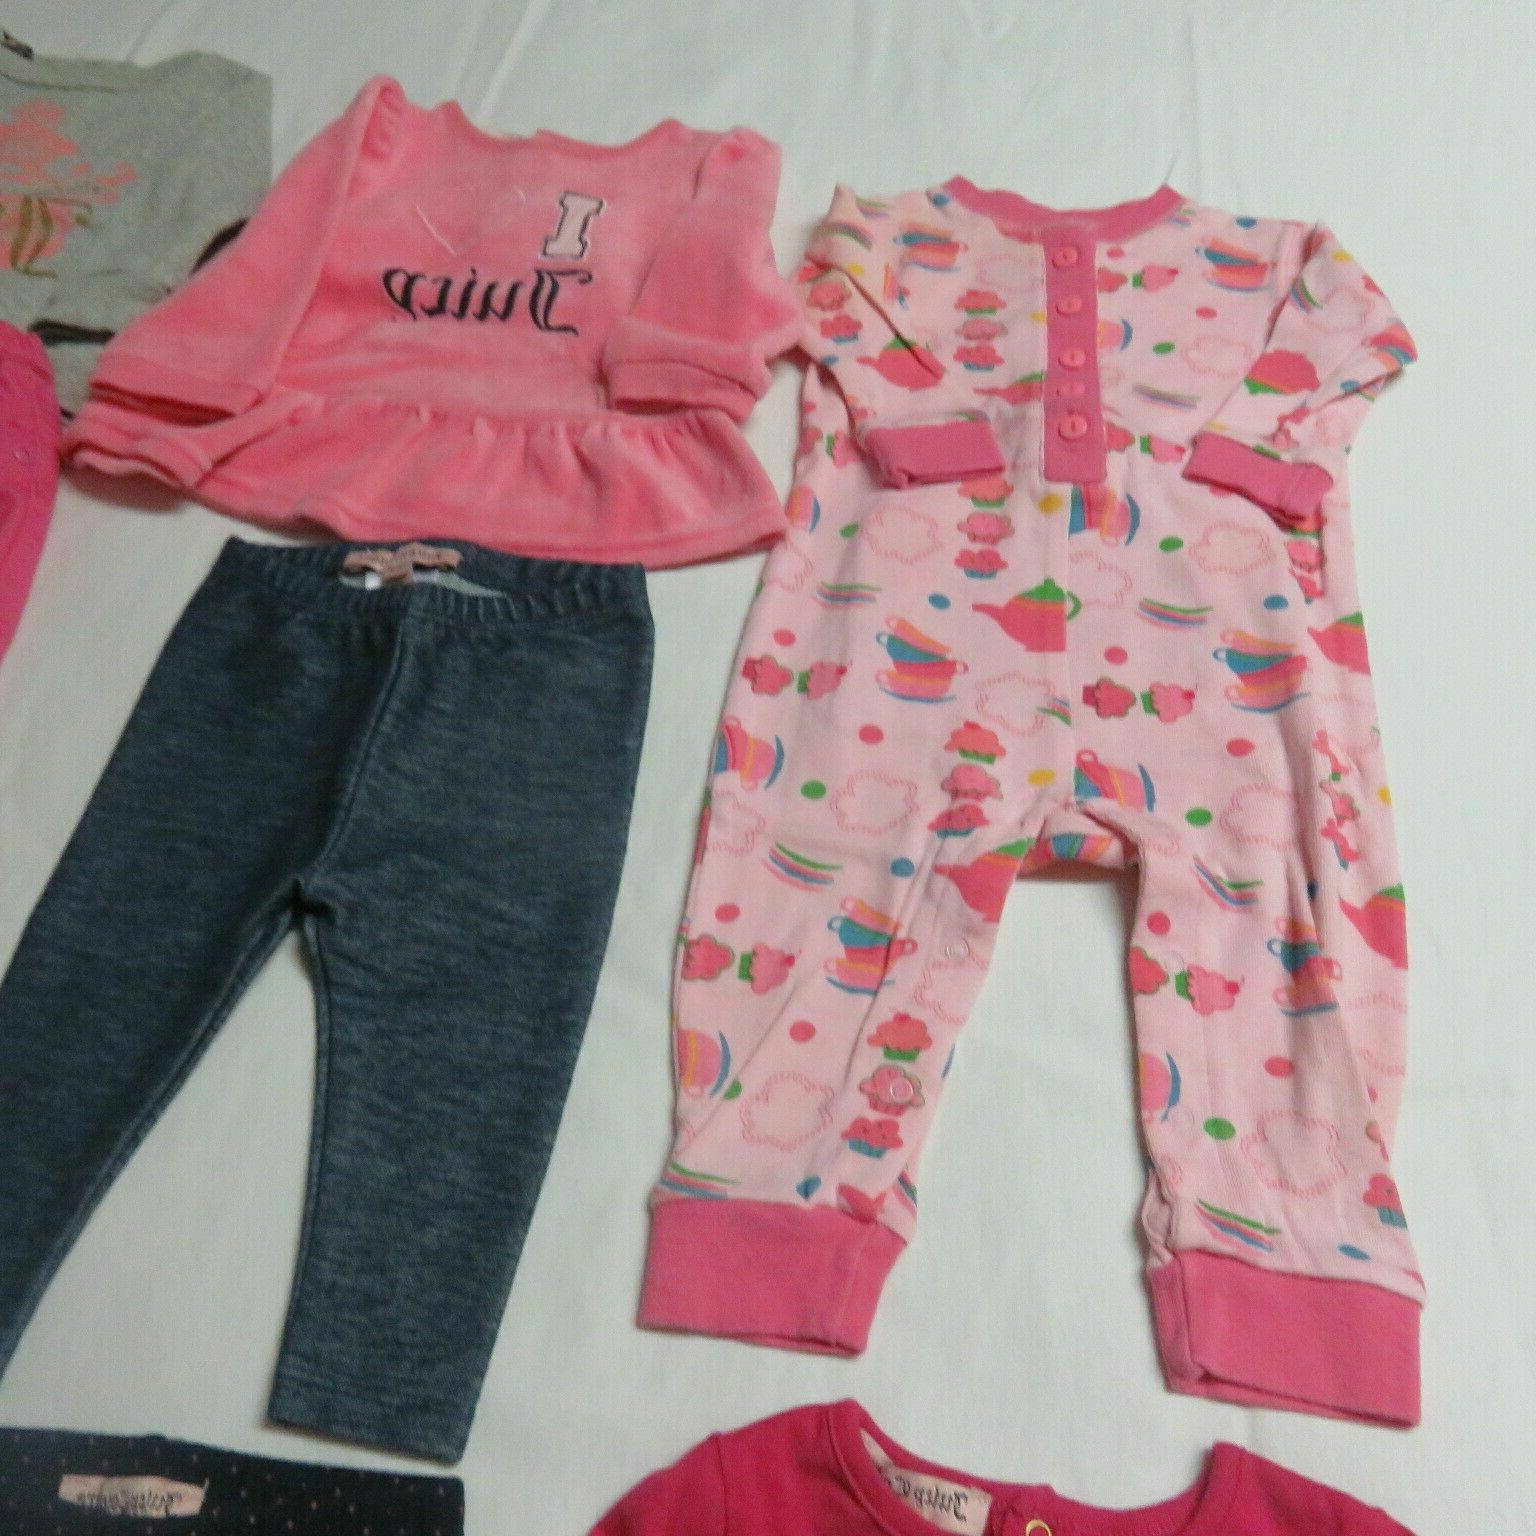 13 - Juicy Couture, etc Grouping 3-6